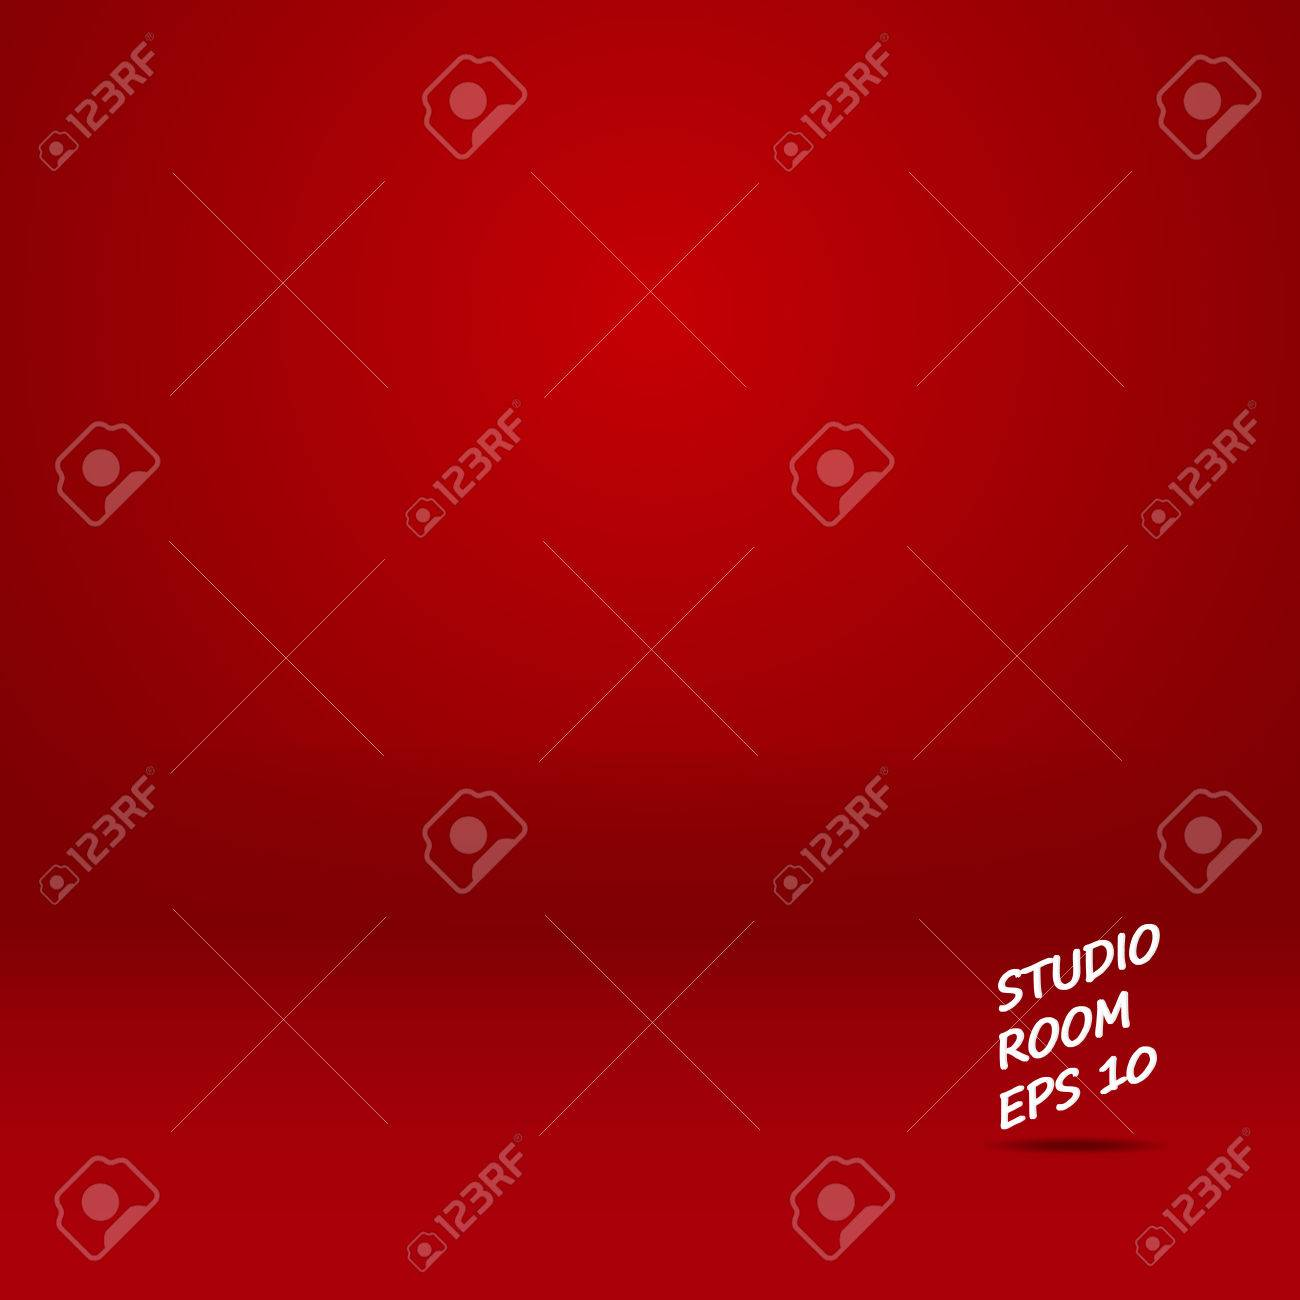 Studio room mock up abstract chinese new year background vector design in red room - 49827944